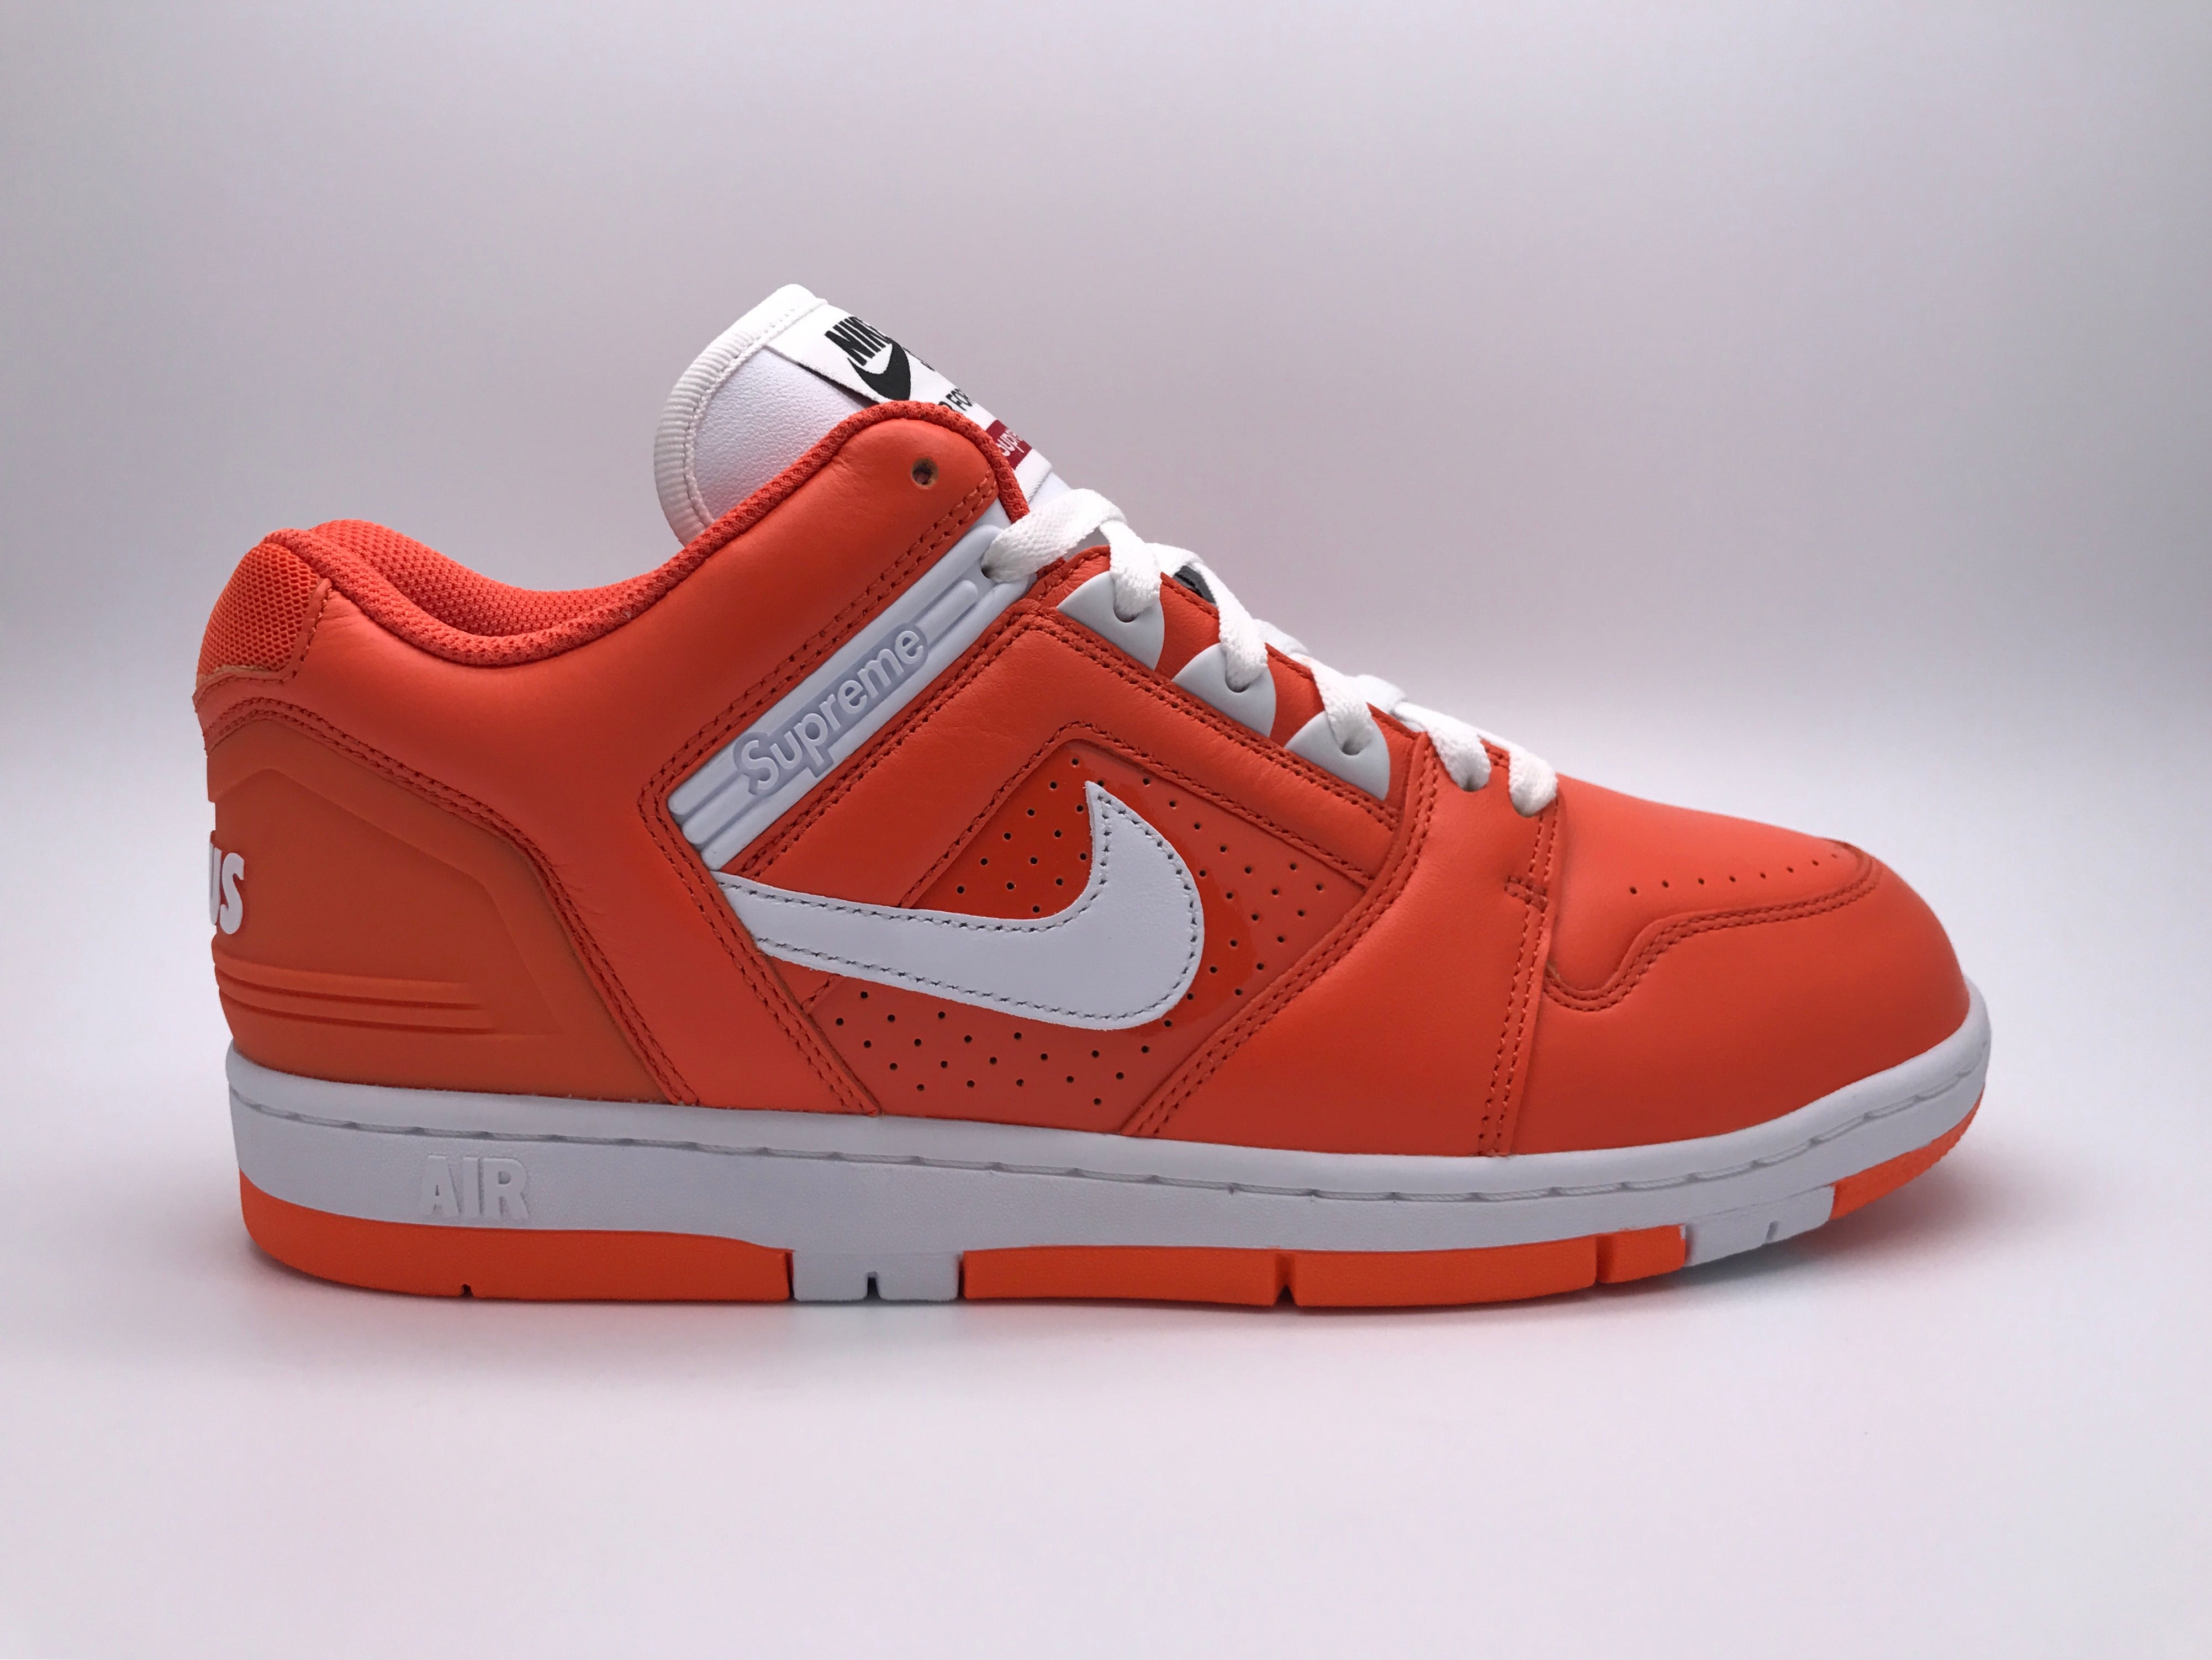 dd9d4062de35 ... vii supreme black red whitewomens nike free runcheap nike freeworld  wide renown f6ee6 2673a  closeout orange and grey nike dunks bb4f5 6cb56